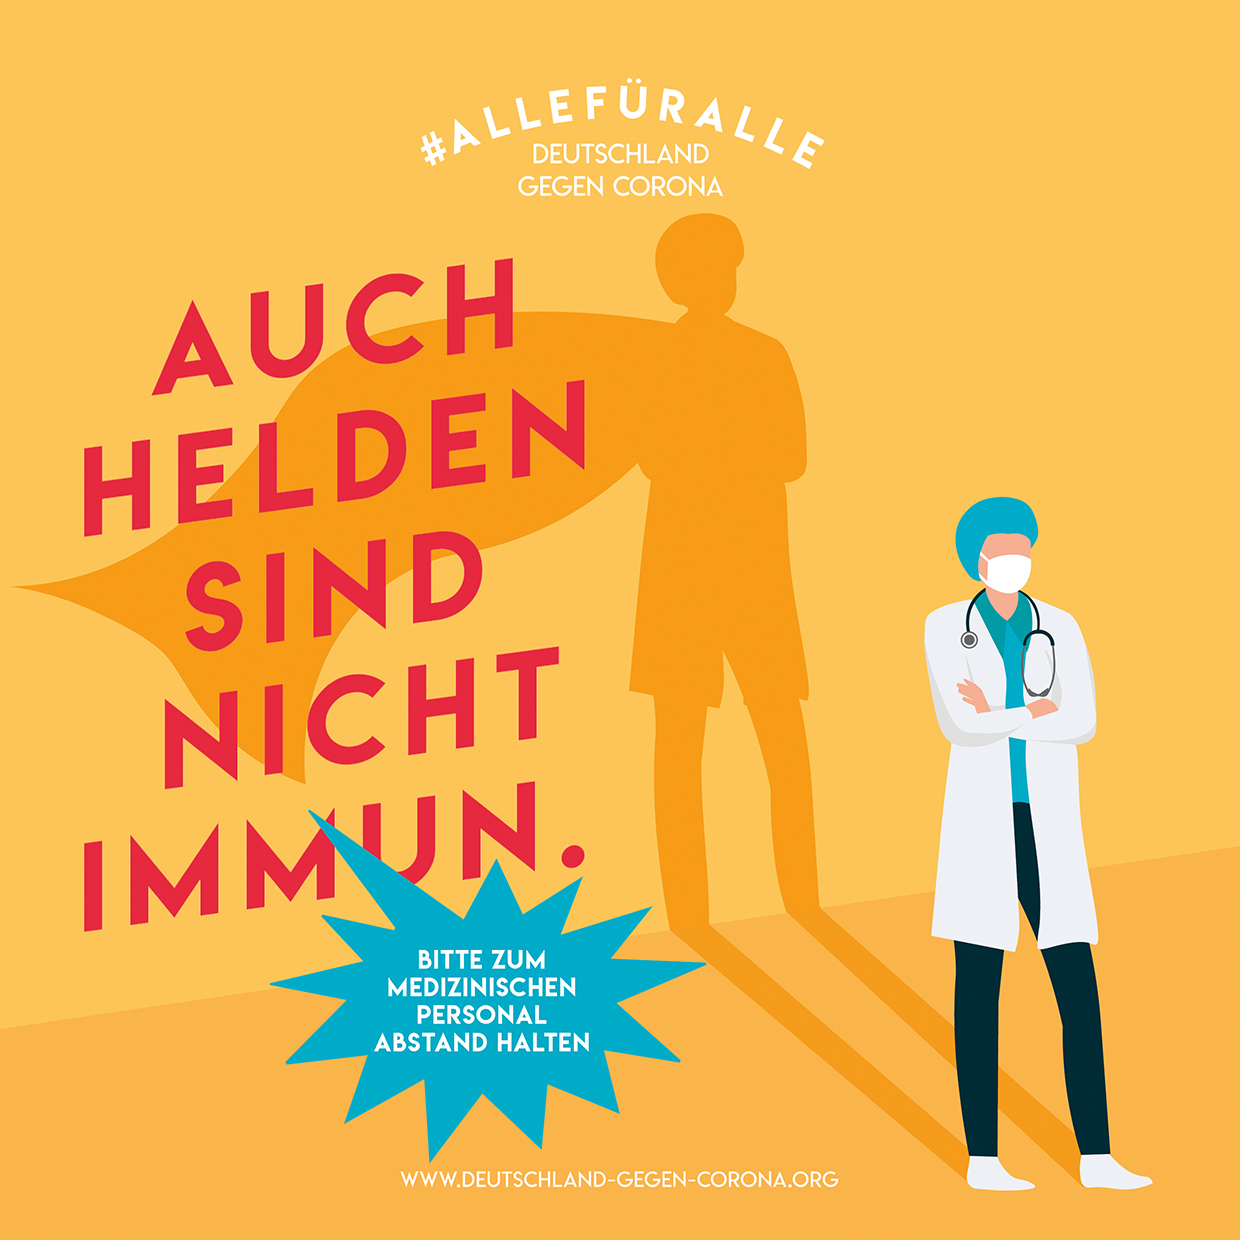 allefueralle website motiv 20